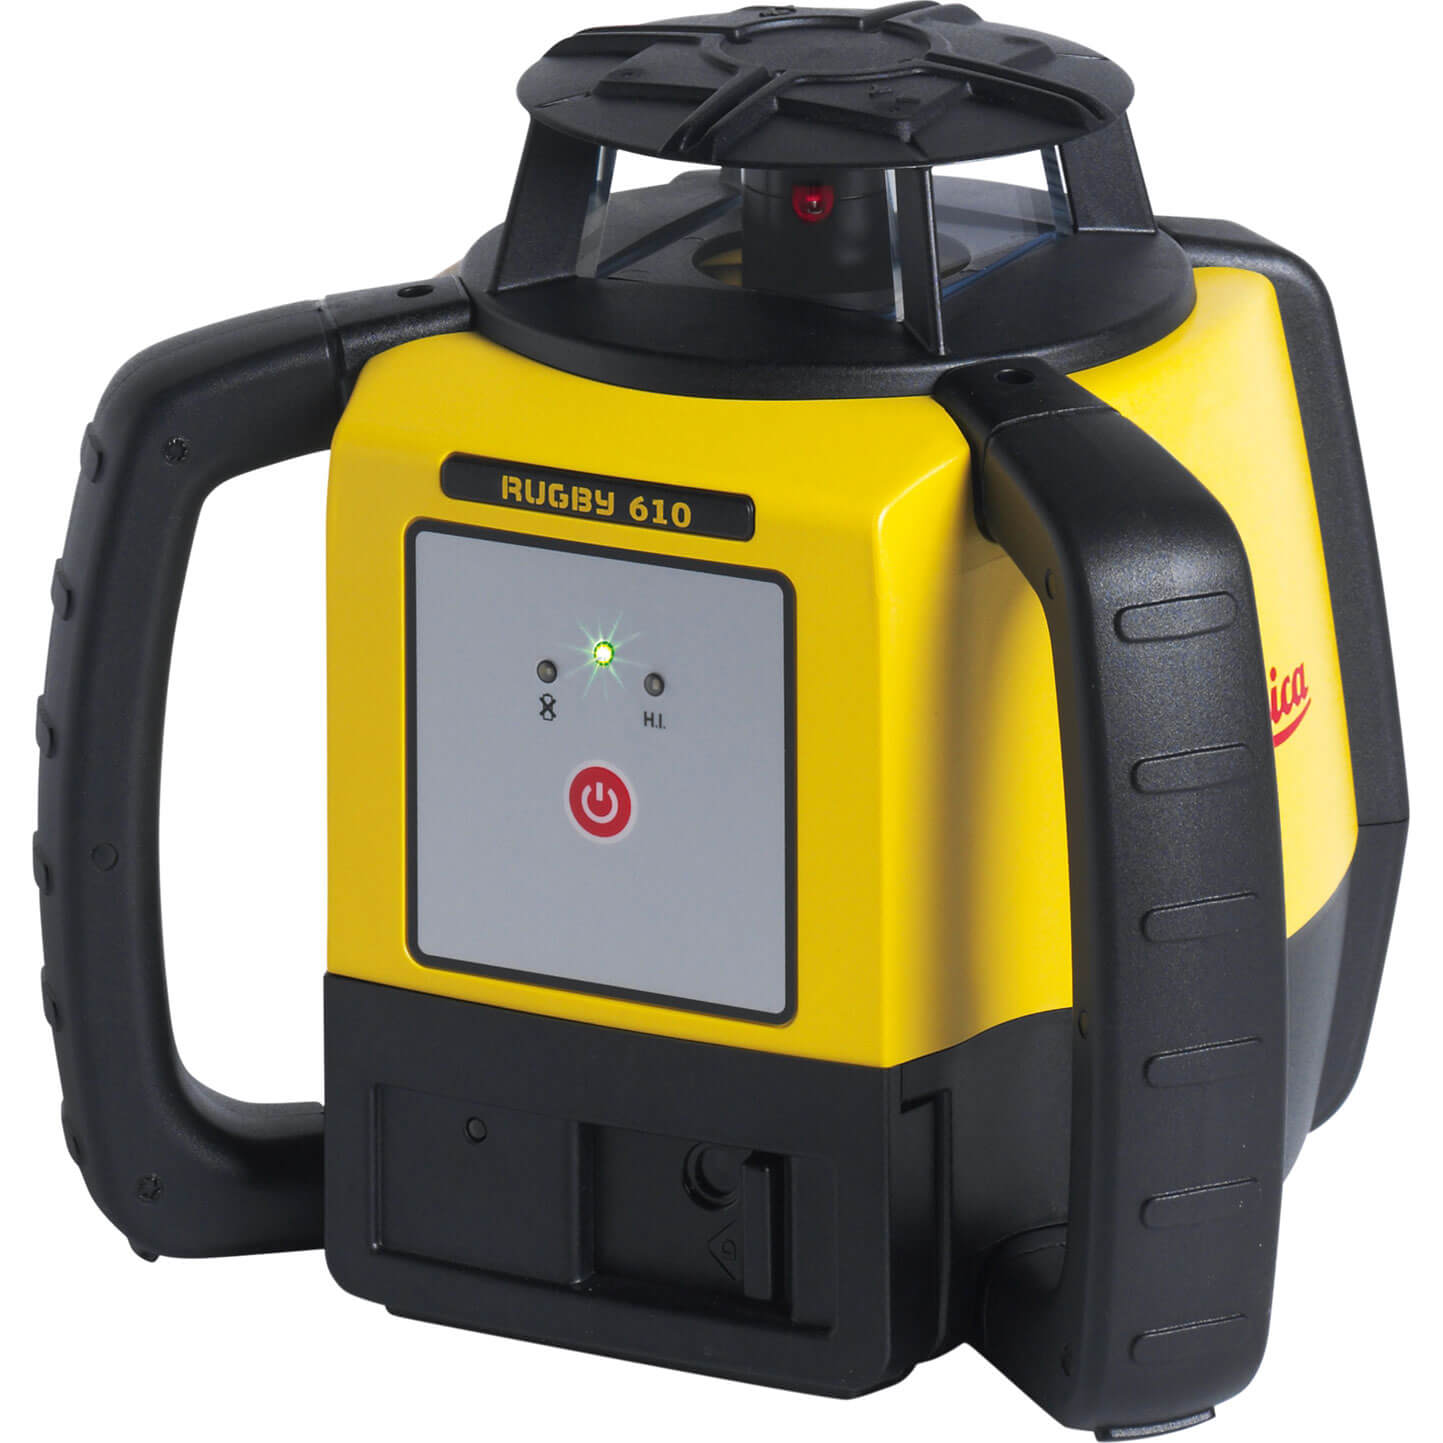 Image of Leica Geosystems Rugby 610BL Rotating Self Levelling Laser Level